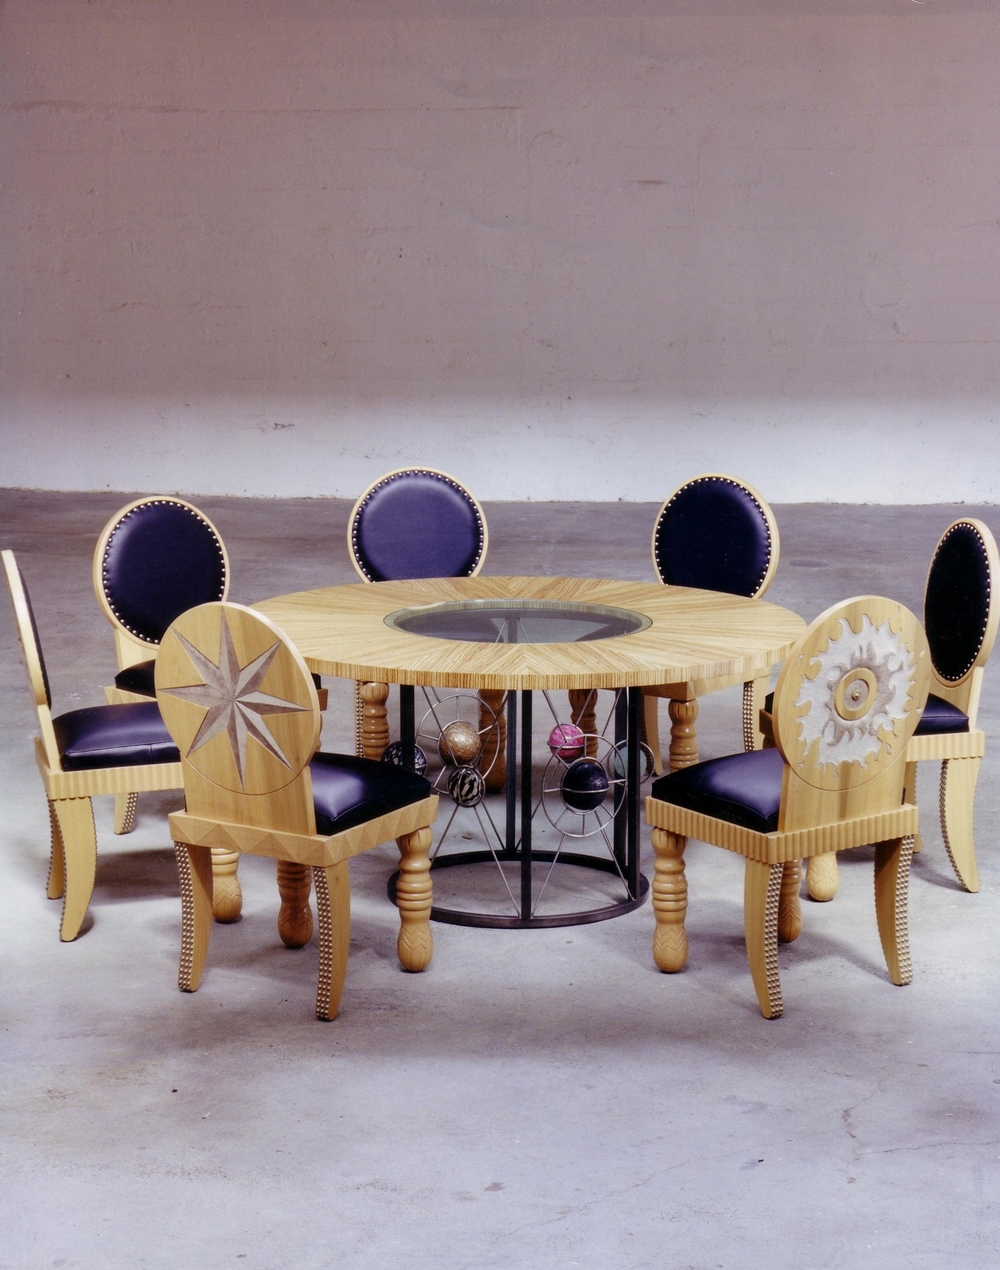 300 dpi_furniture-circle dining.jpg